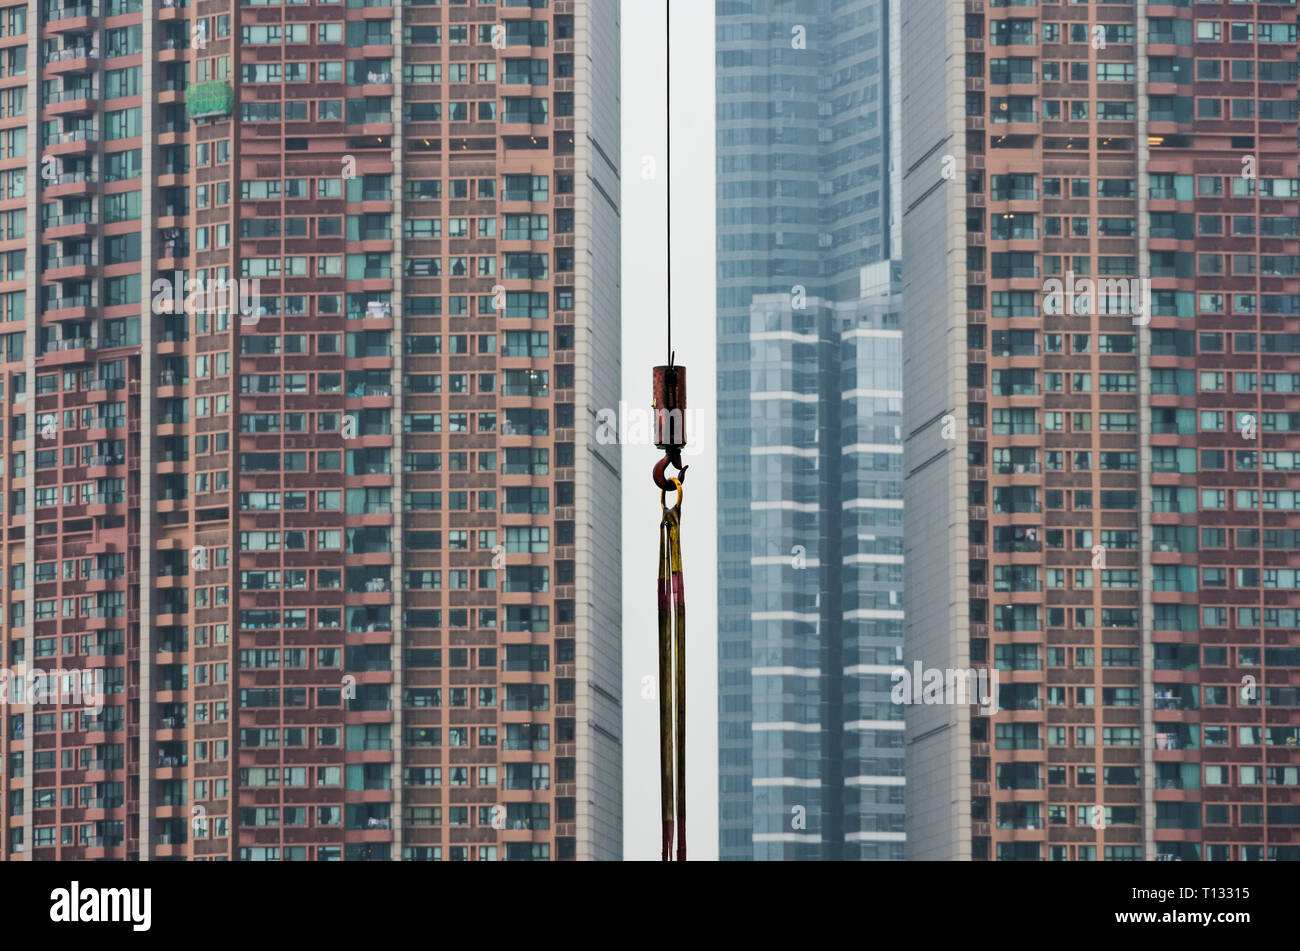 Hong Kong Skyscrapers, Tight space, overpopulation, Construction yard, East Asia, China, Modern buildings, Tower Crane, simple, rope, background, - Stock Image